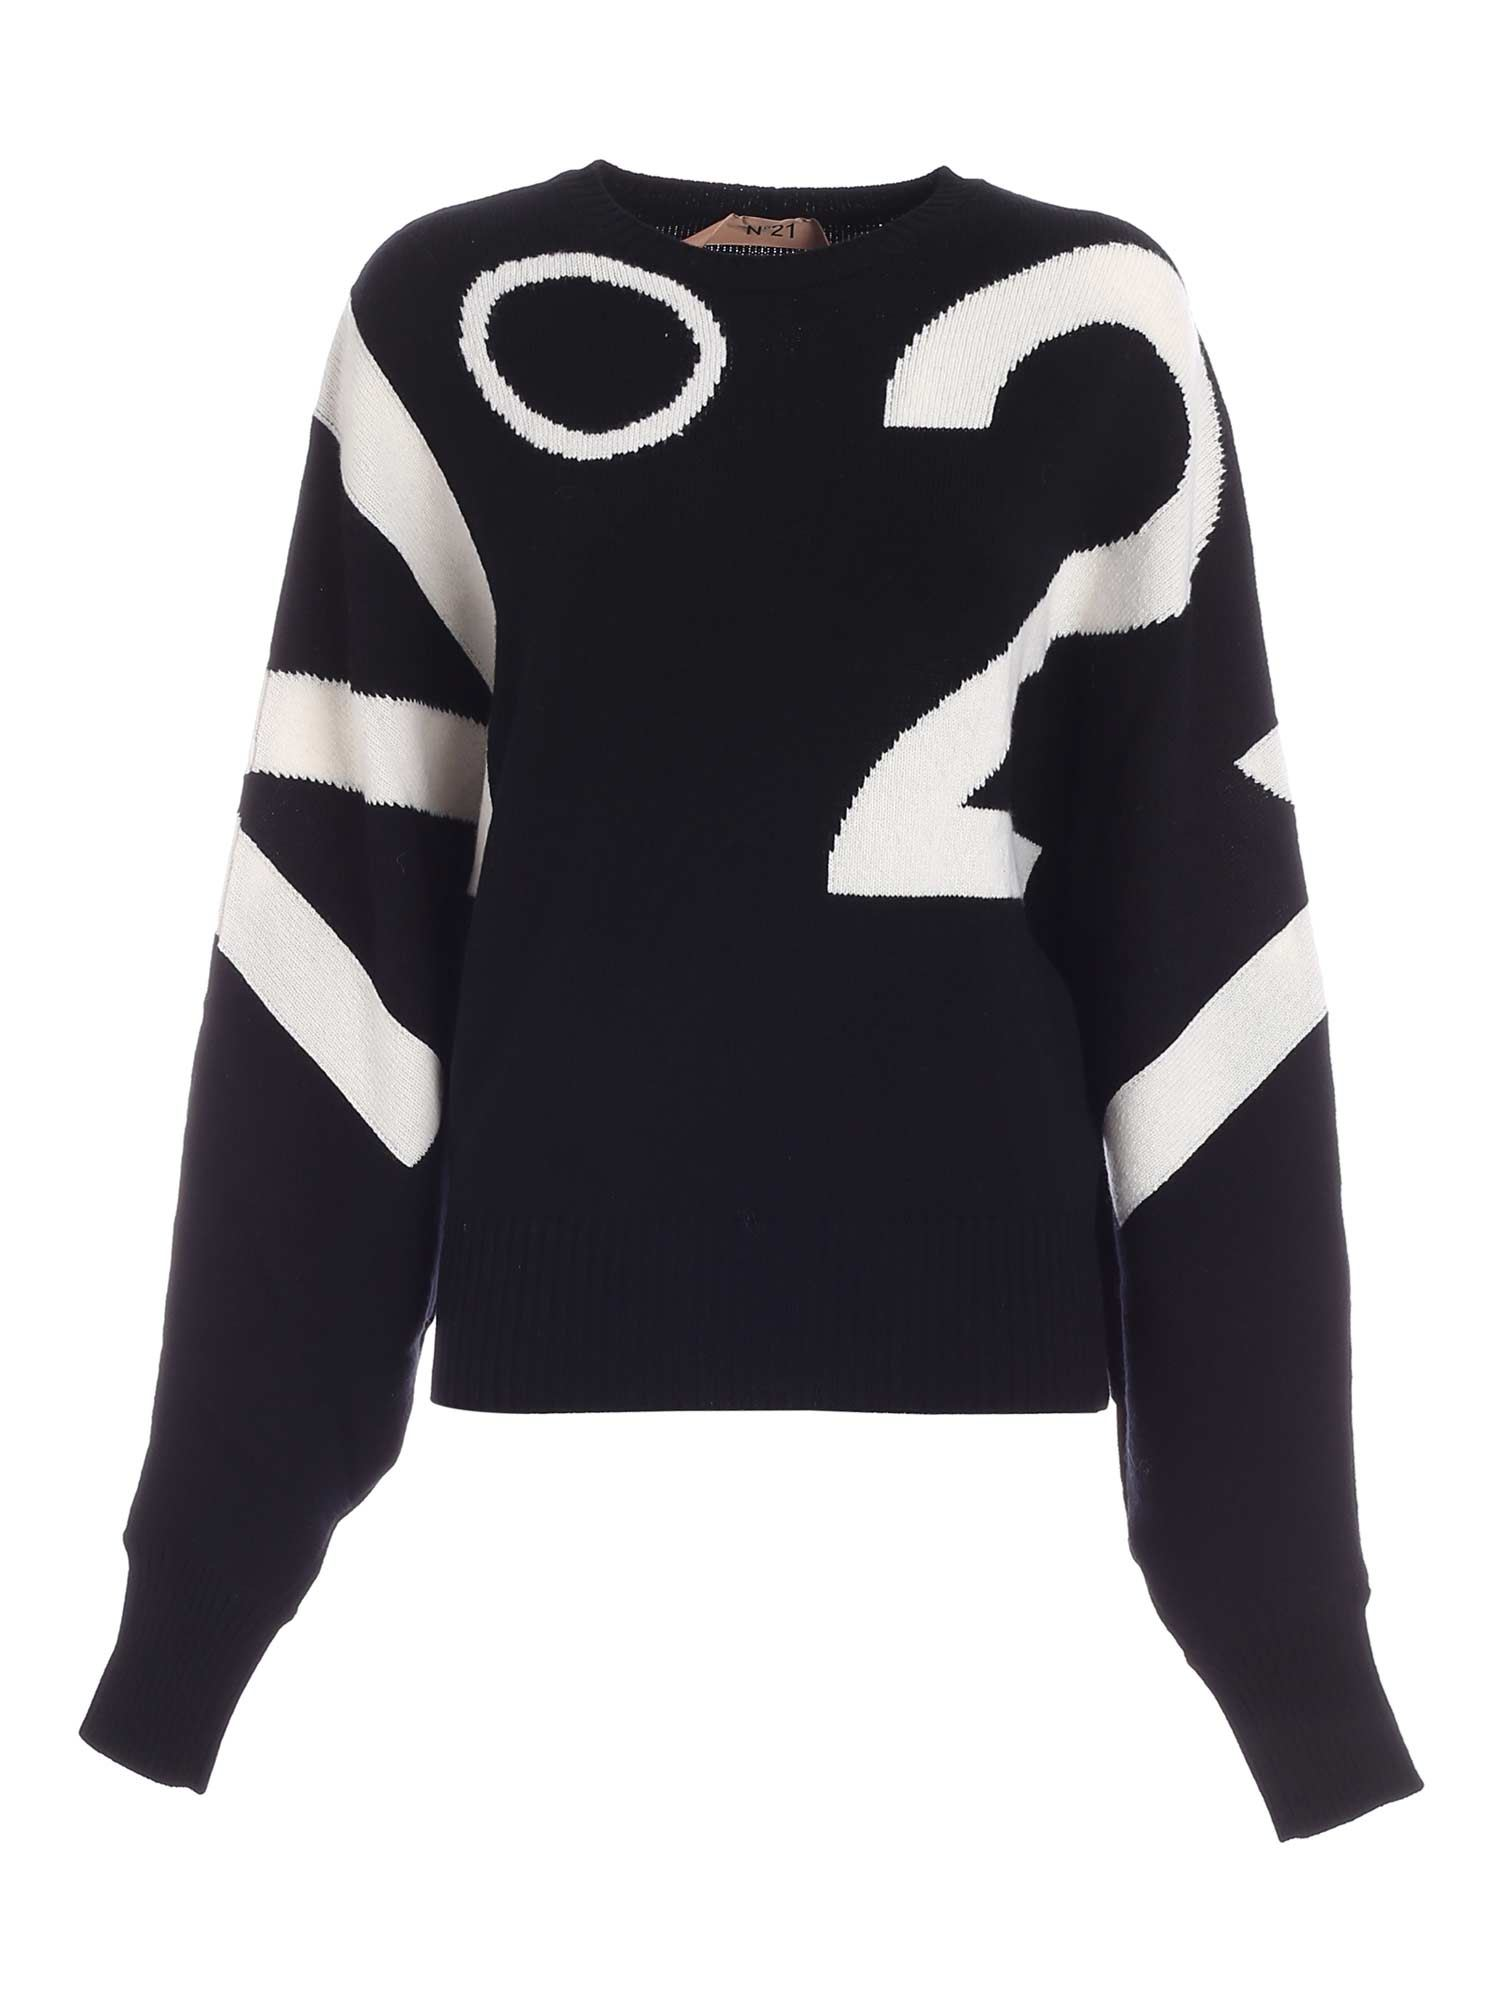 N°21 WHITE PATTERN PULLOVER IN BLACK